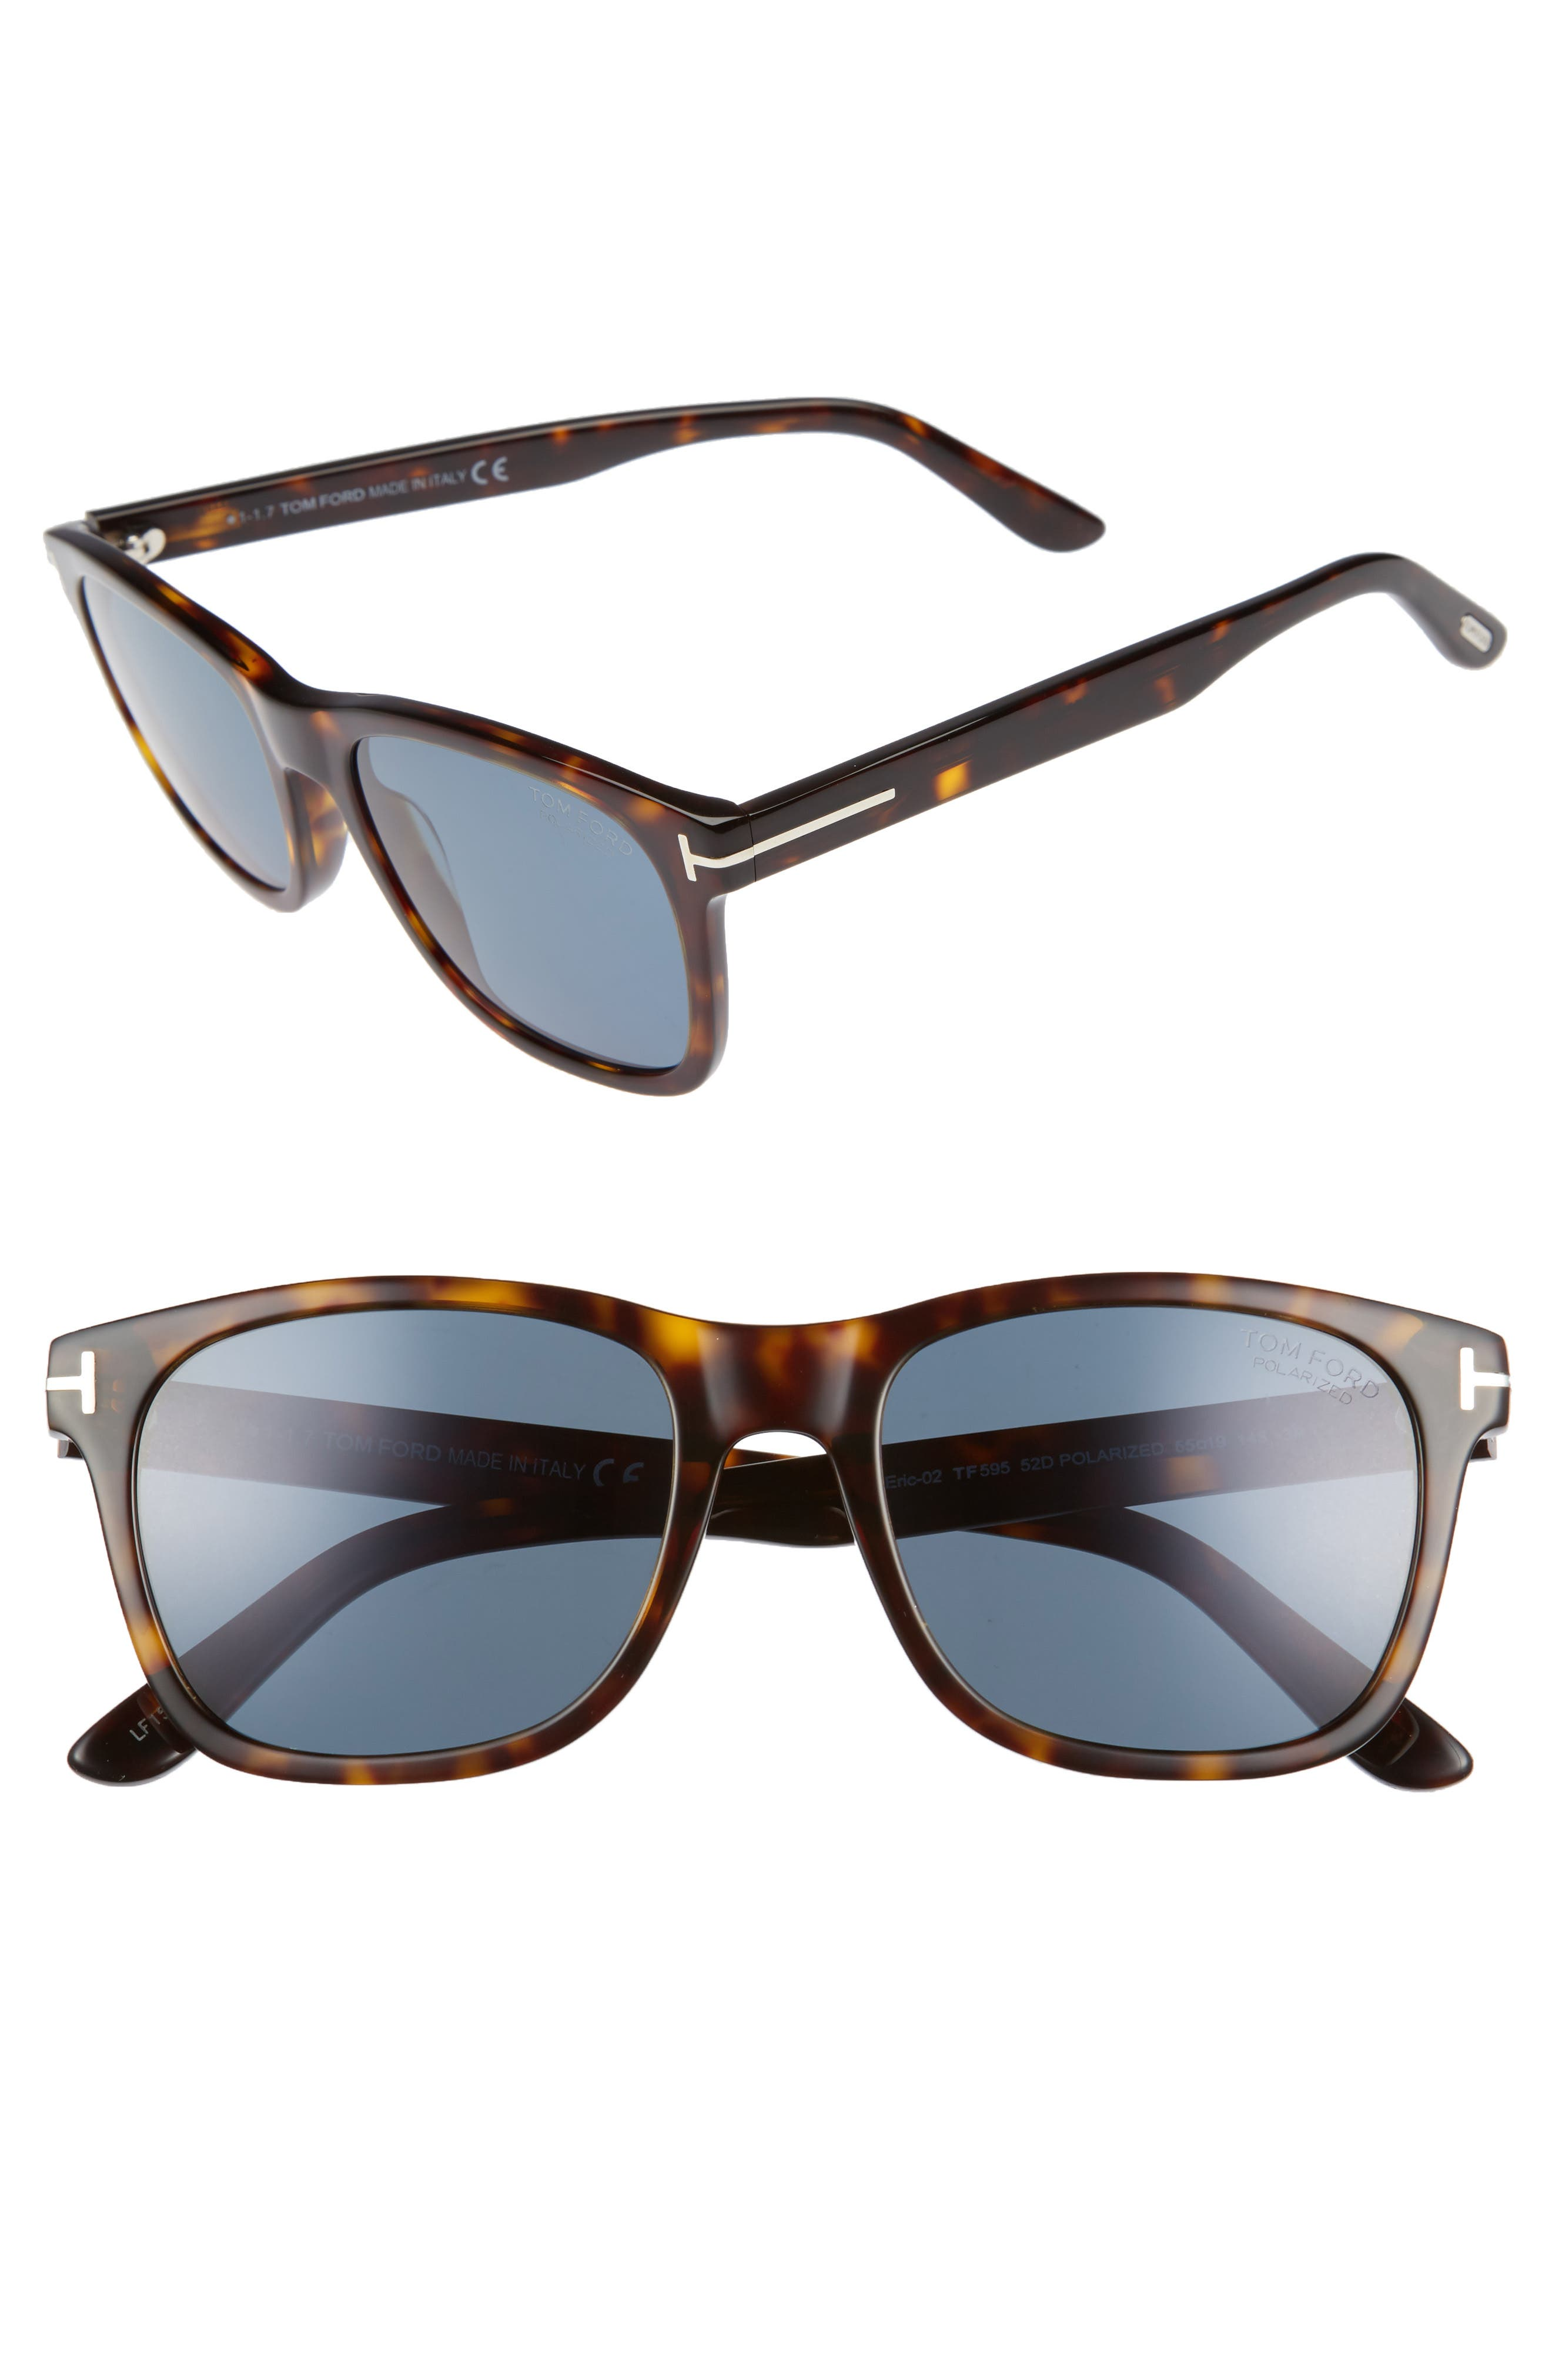 Alternate Image 1 Selected - Tom Ford Eric 55mm Polarized Sunglasses